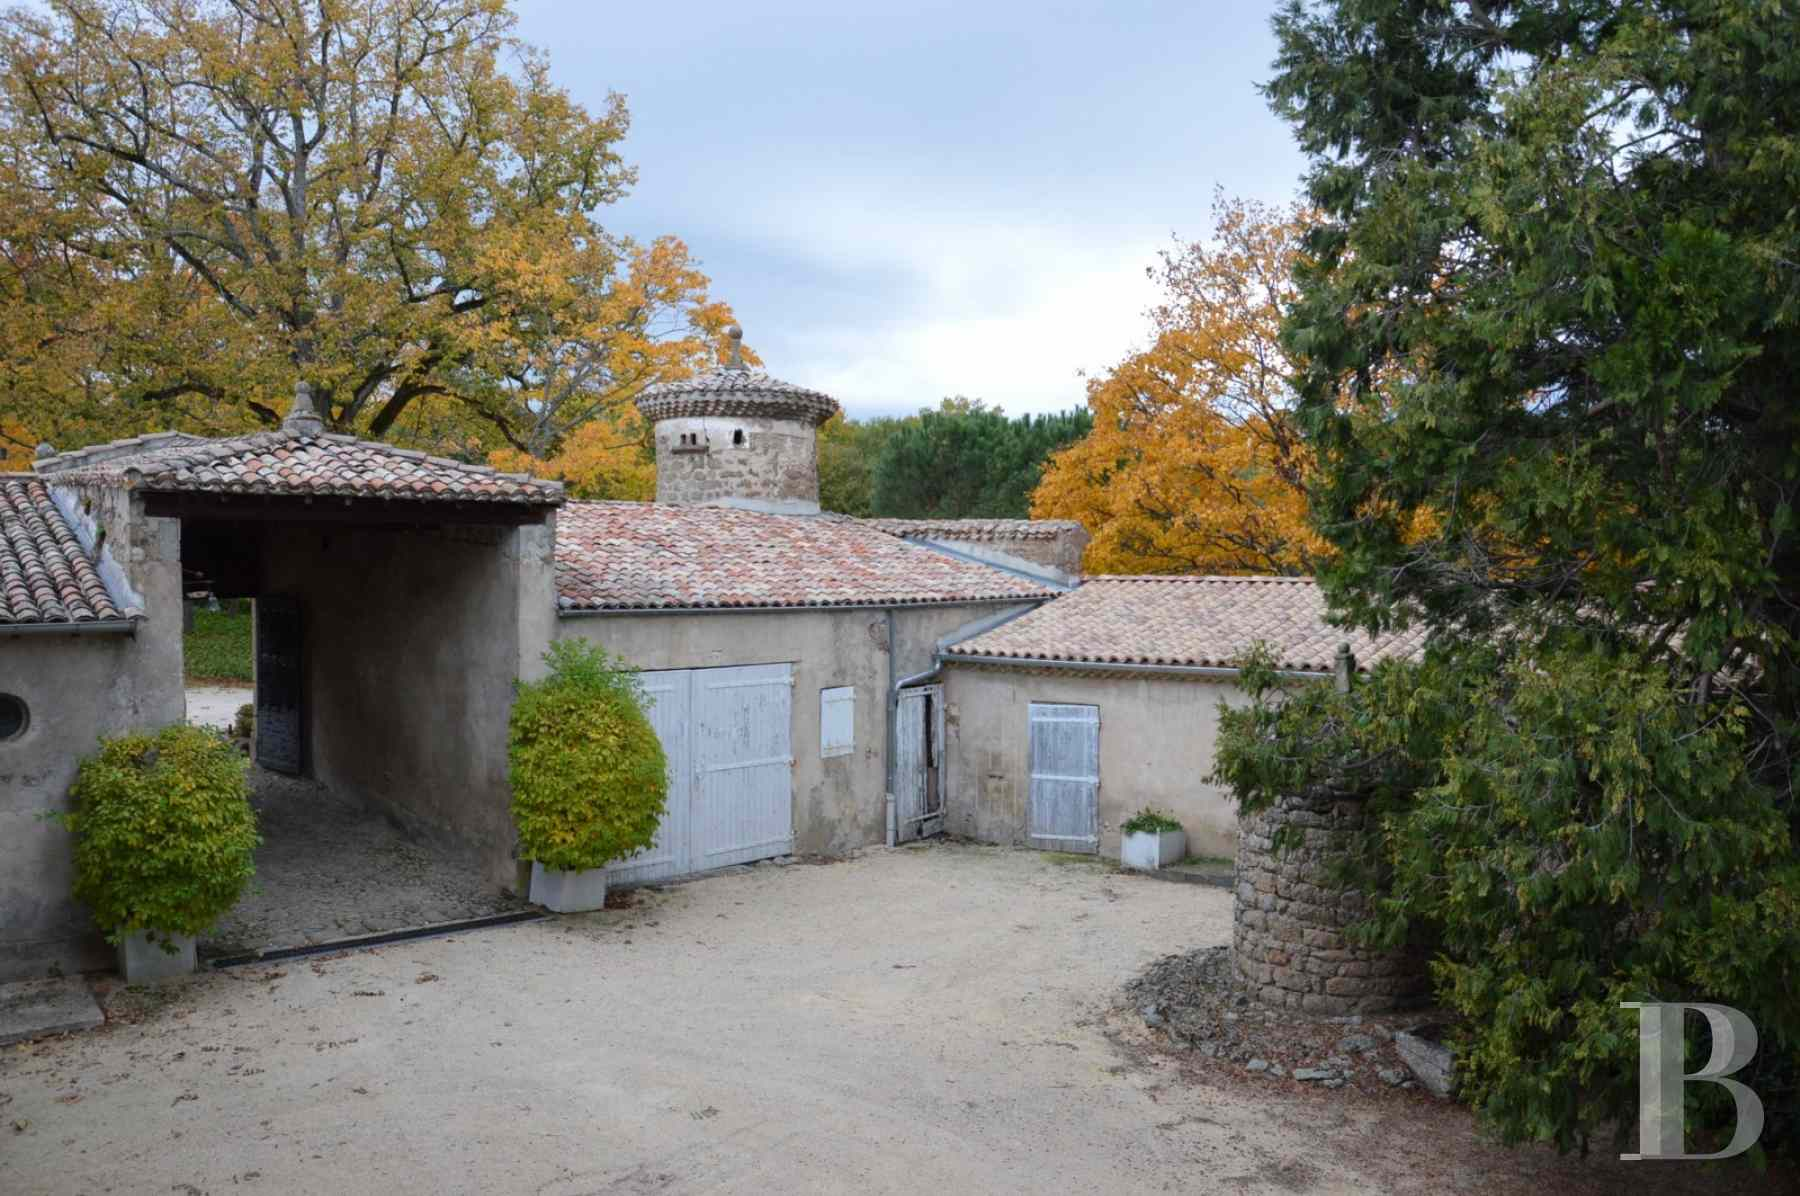 property for sale France rhones alps ardeche 18th - 18 zoom